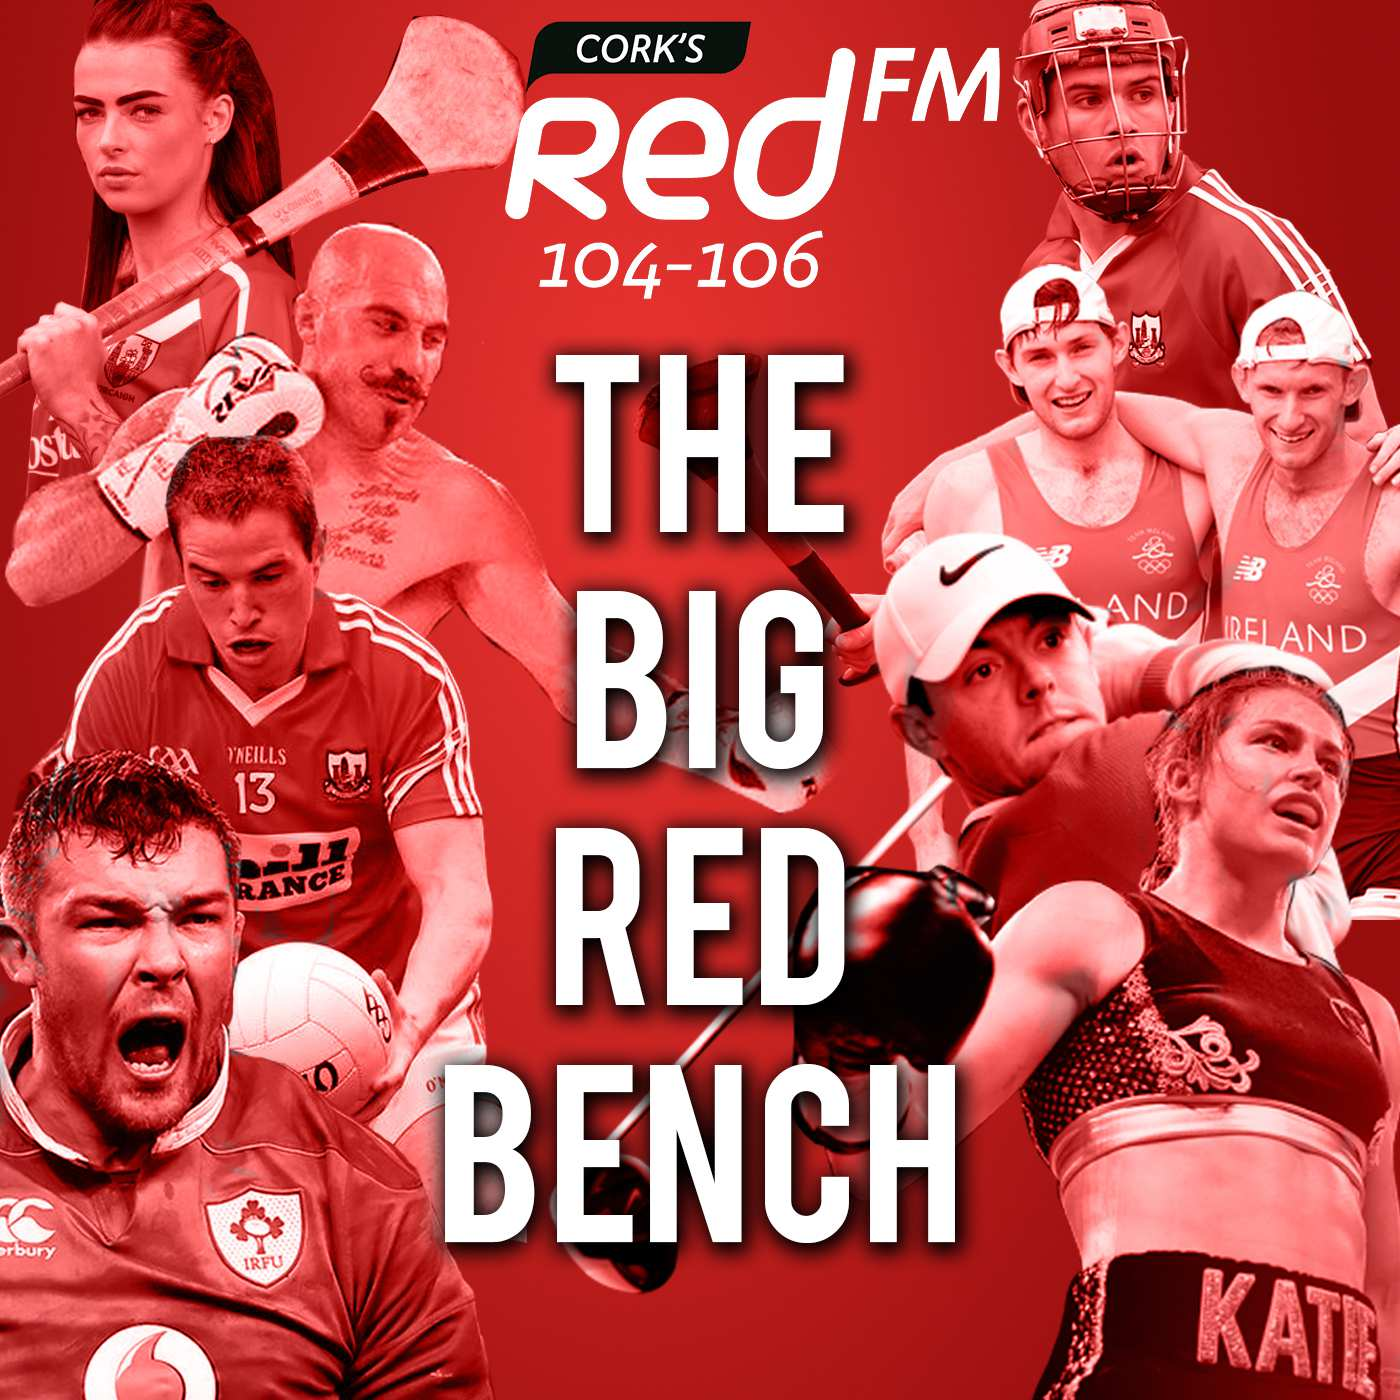 The Big Red Bench